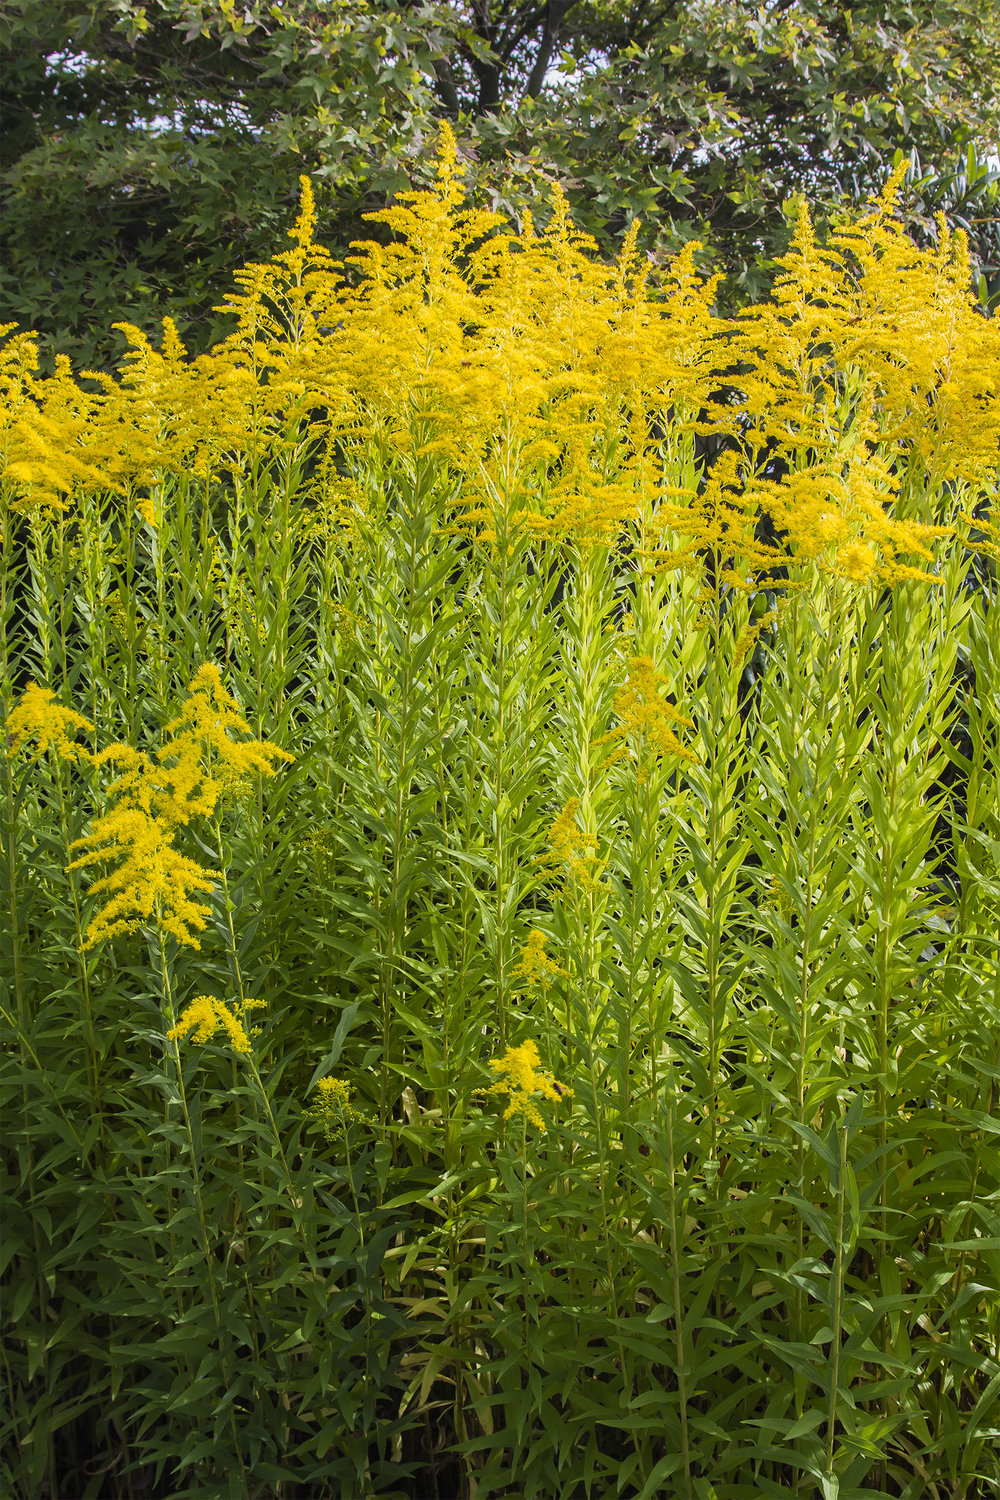 A herbal forest of Goldenrod;  a harmonious haven for insects and bees.